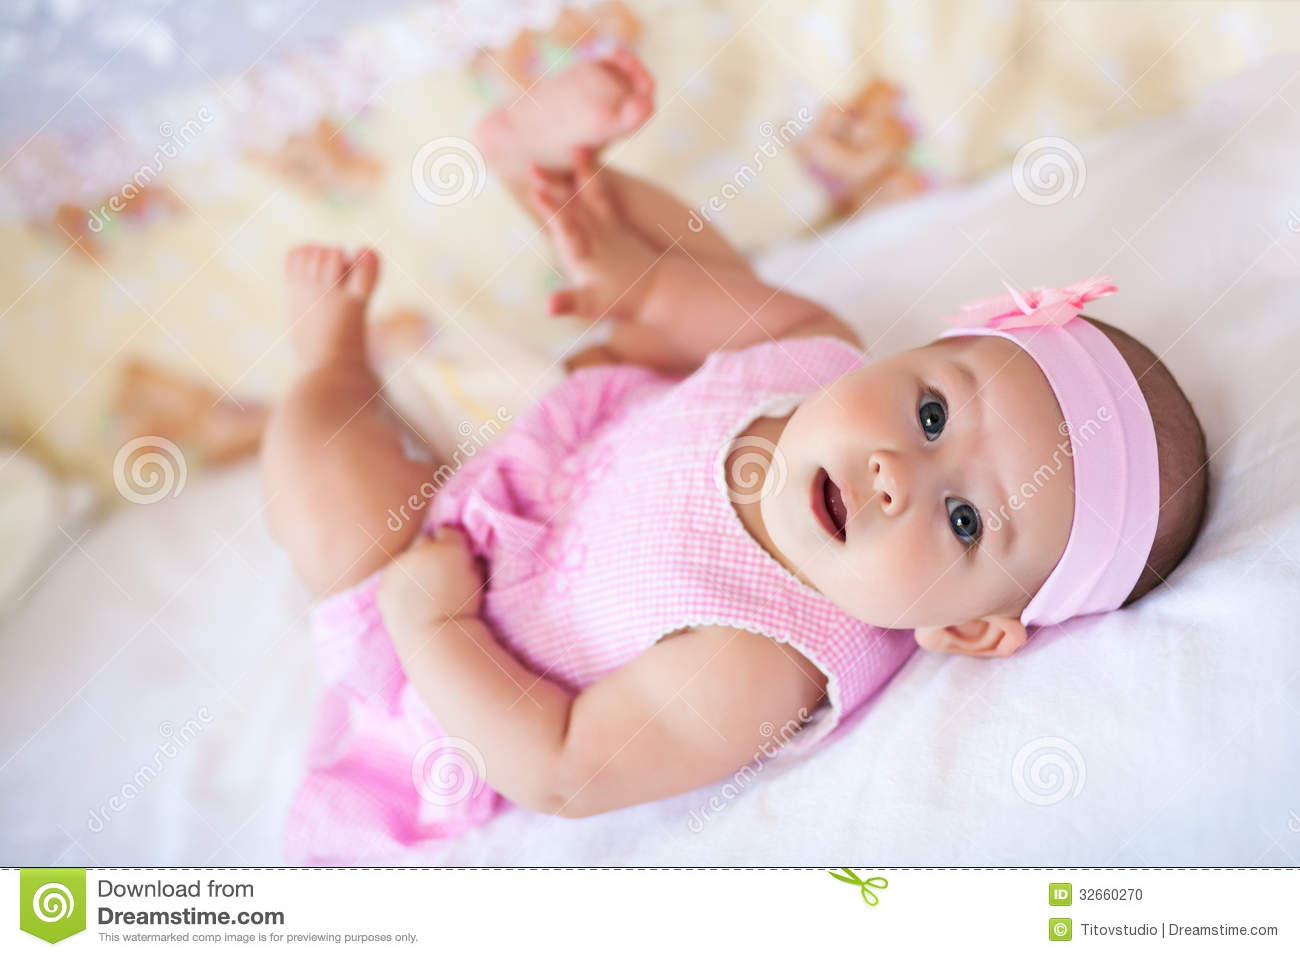 Cute Baby Girl In A Pink Dress Stock Photo - Image: 32660270